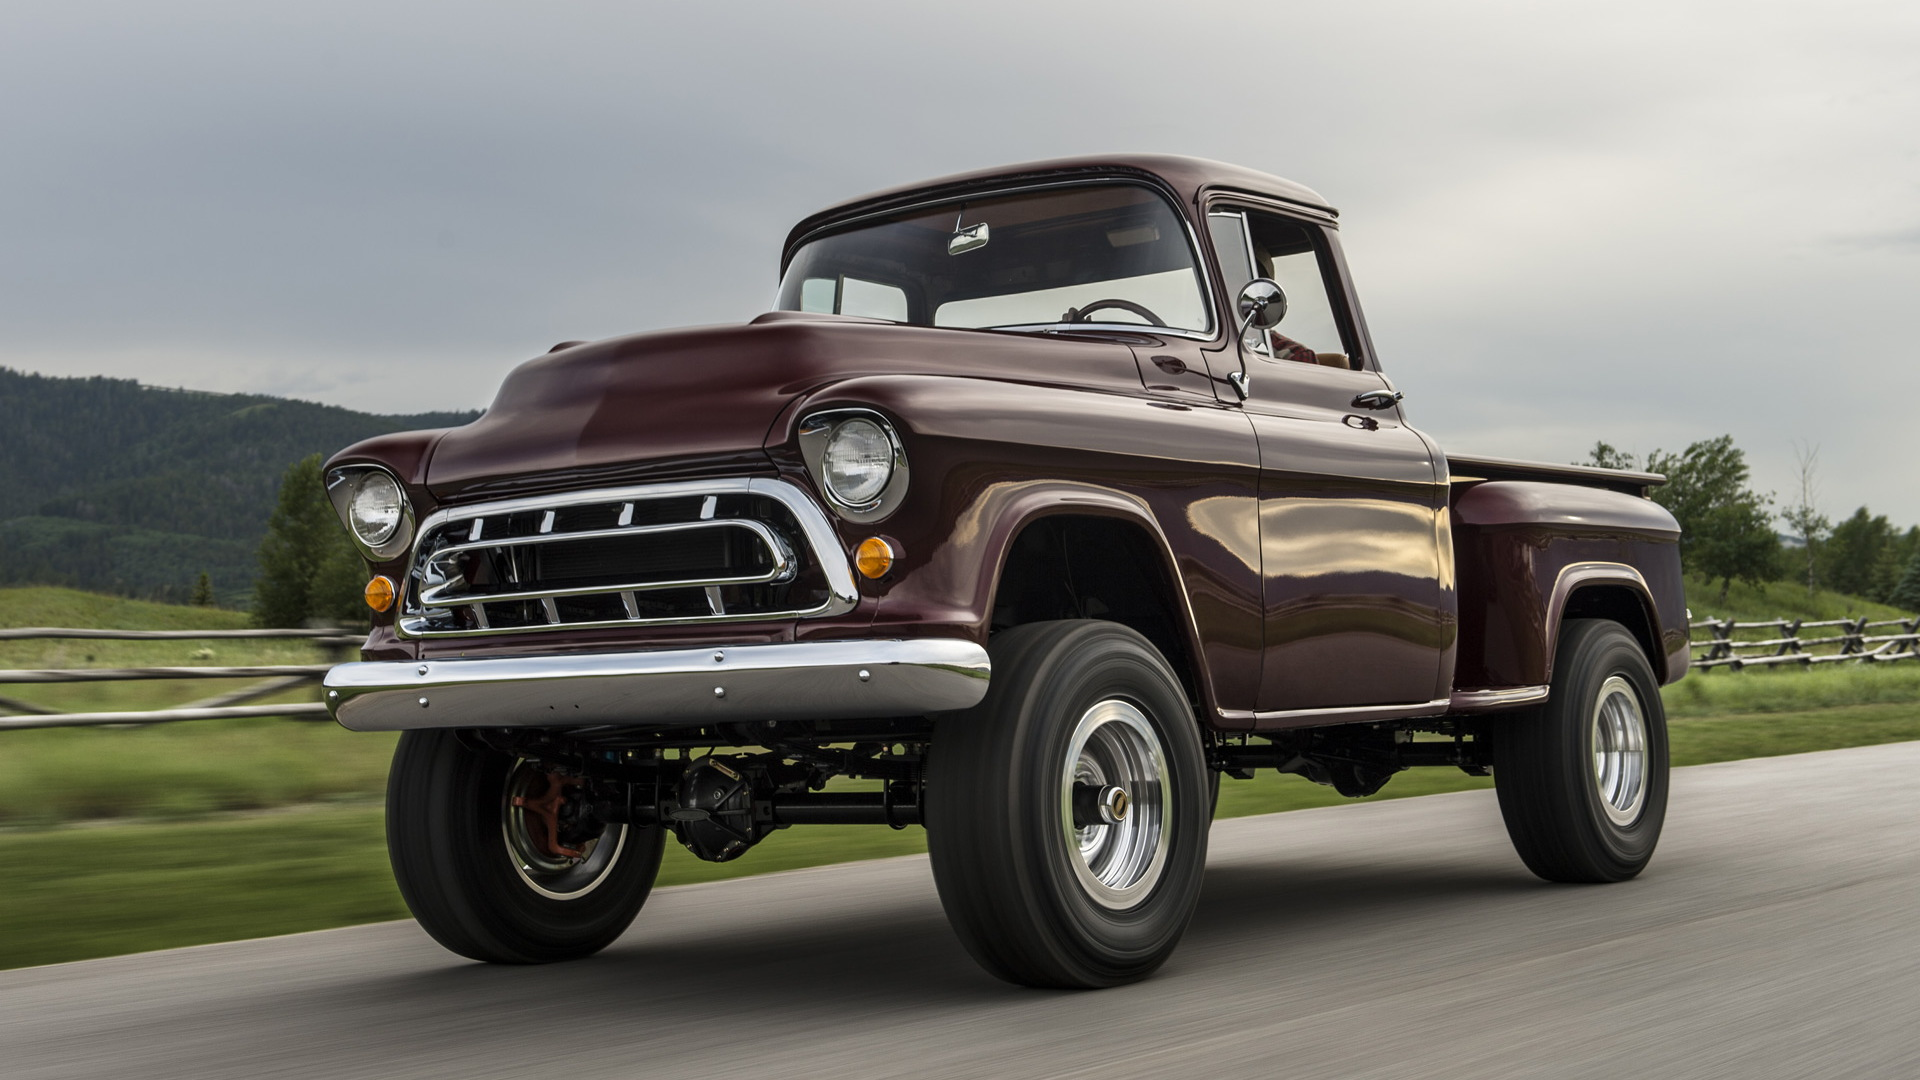 1950s Chevy NAPCO 4x4 by Legacy Classic Trucks - Image via Drew Phillips